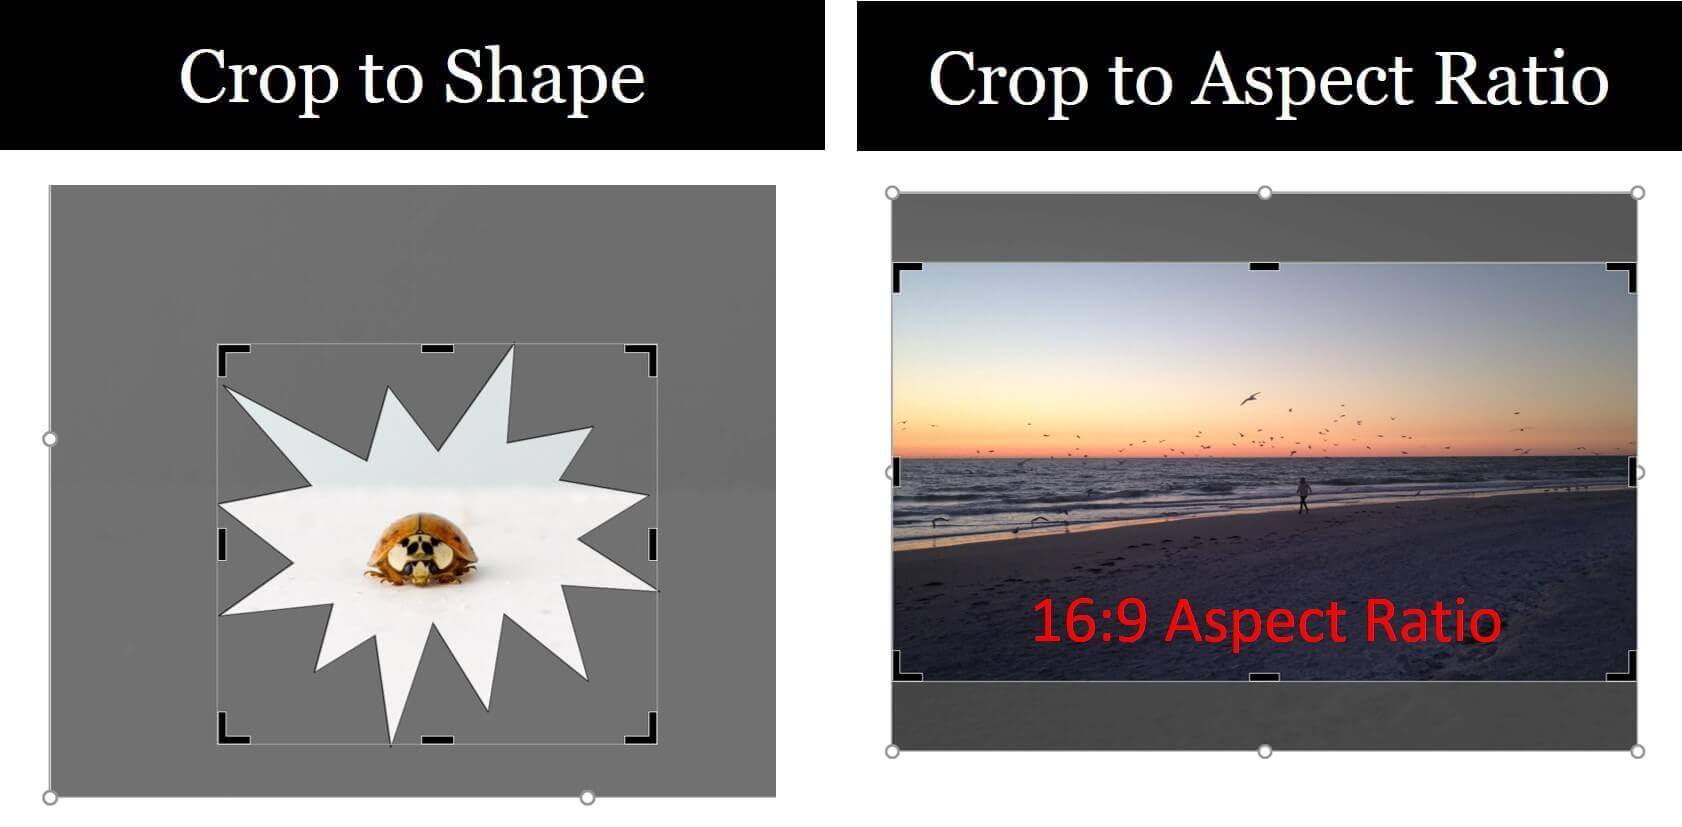 Comparison of cropping to a shape versus cropping to an aspect ratio